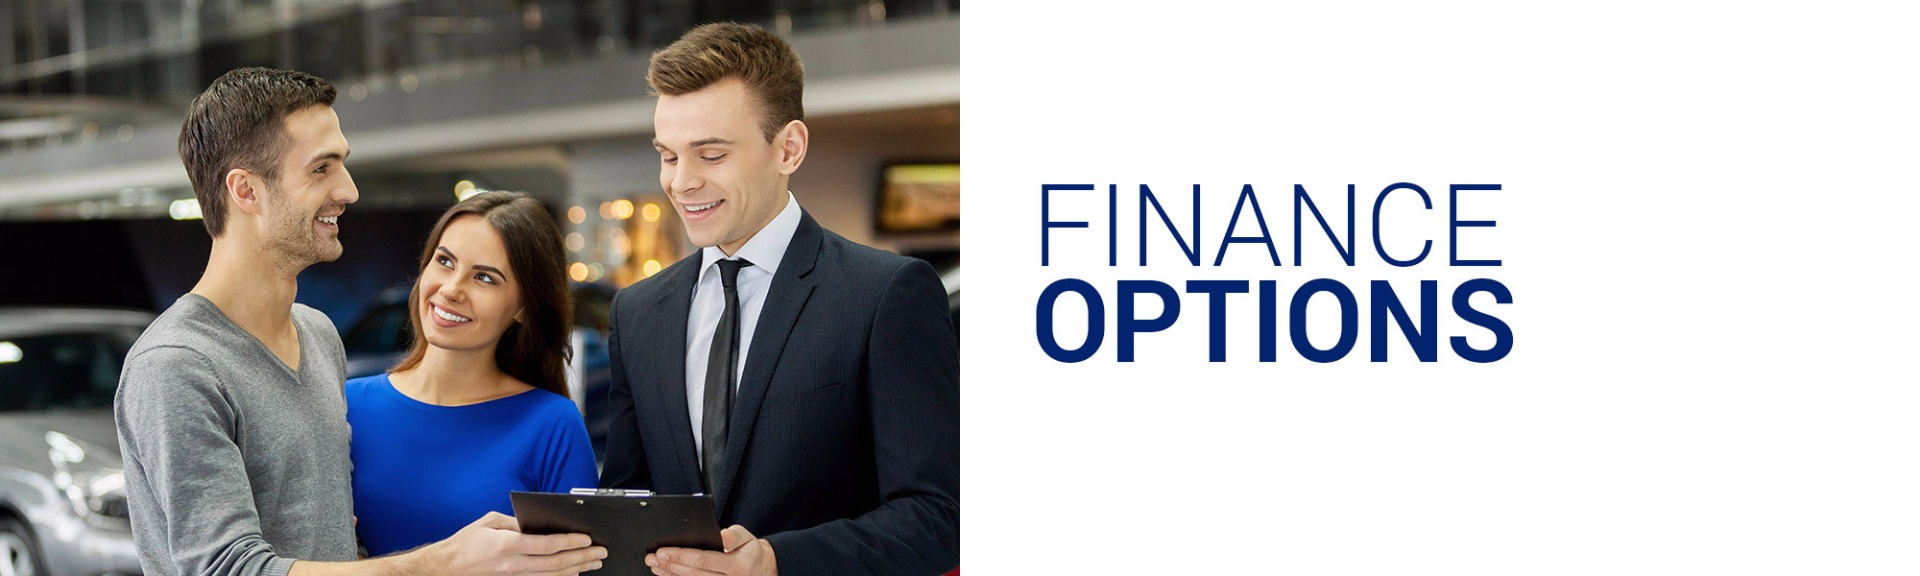 Finance Options